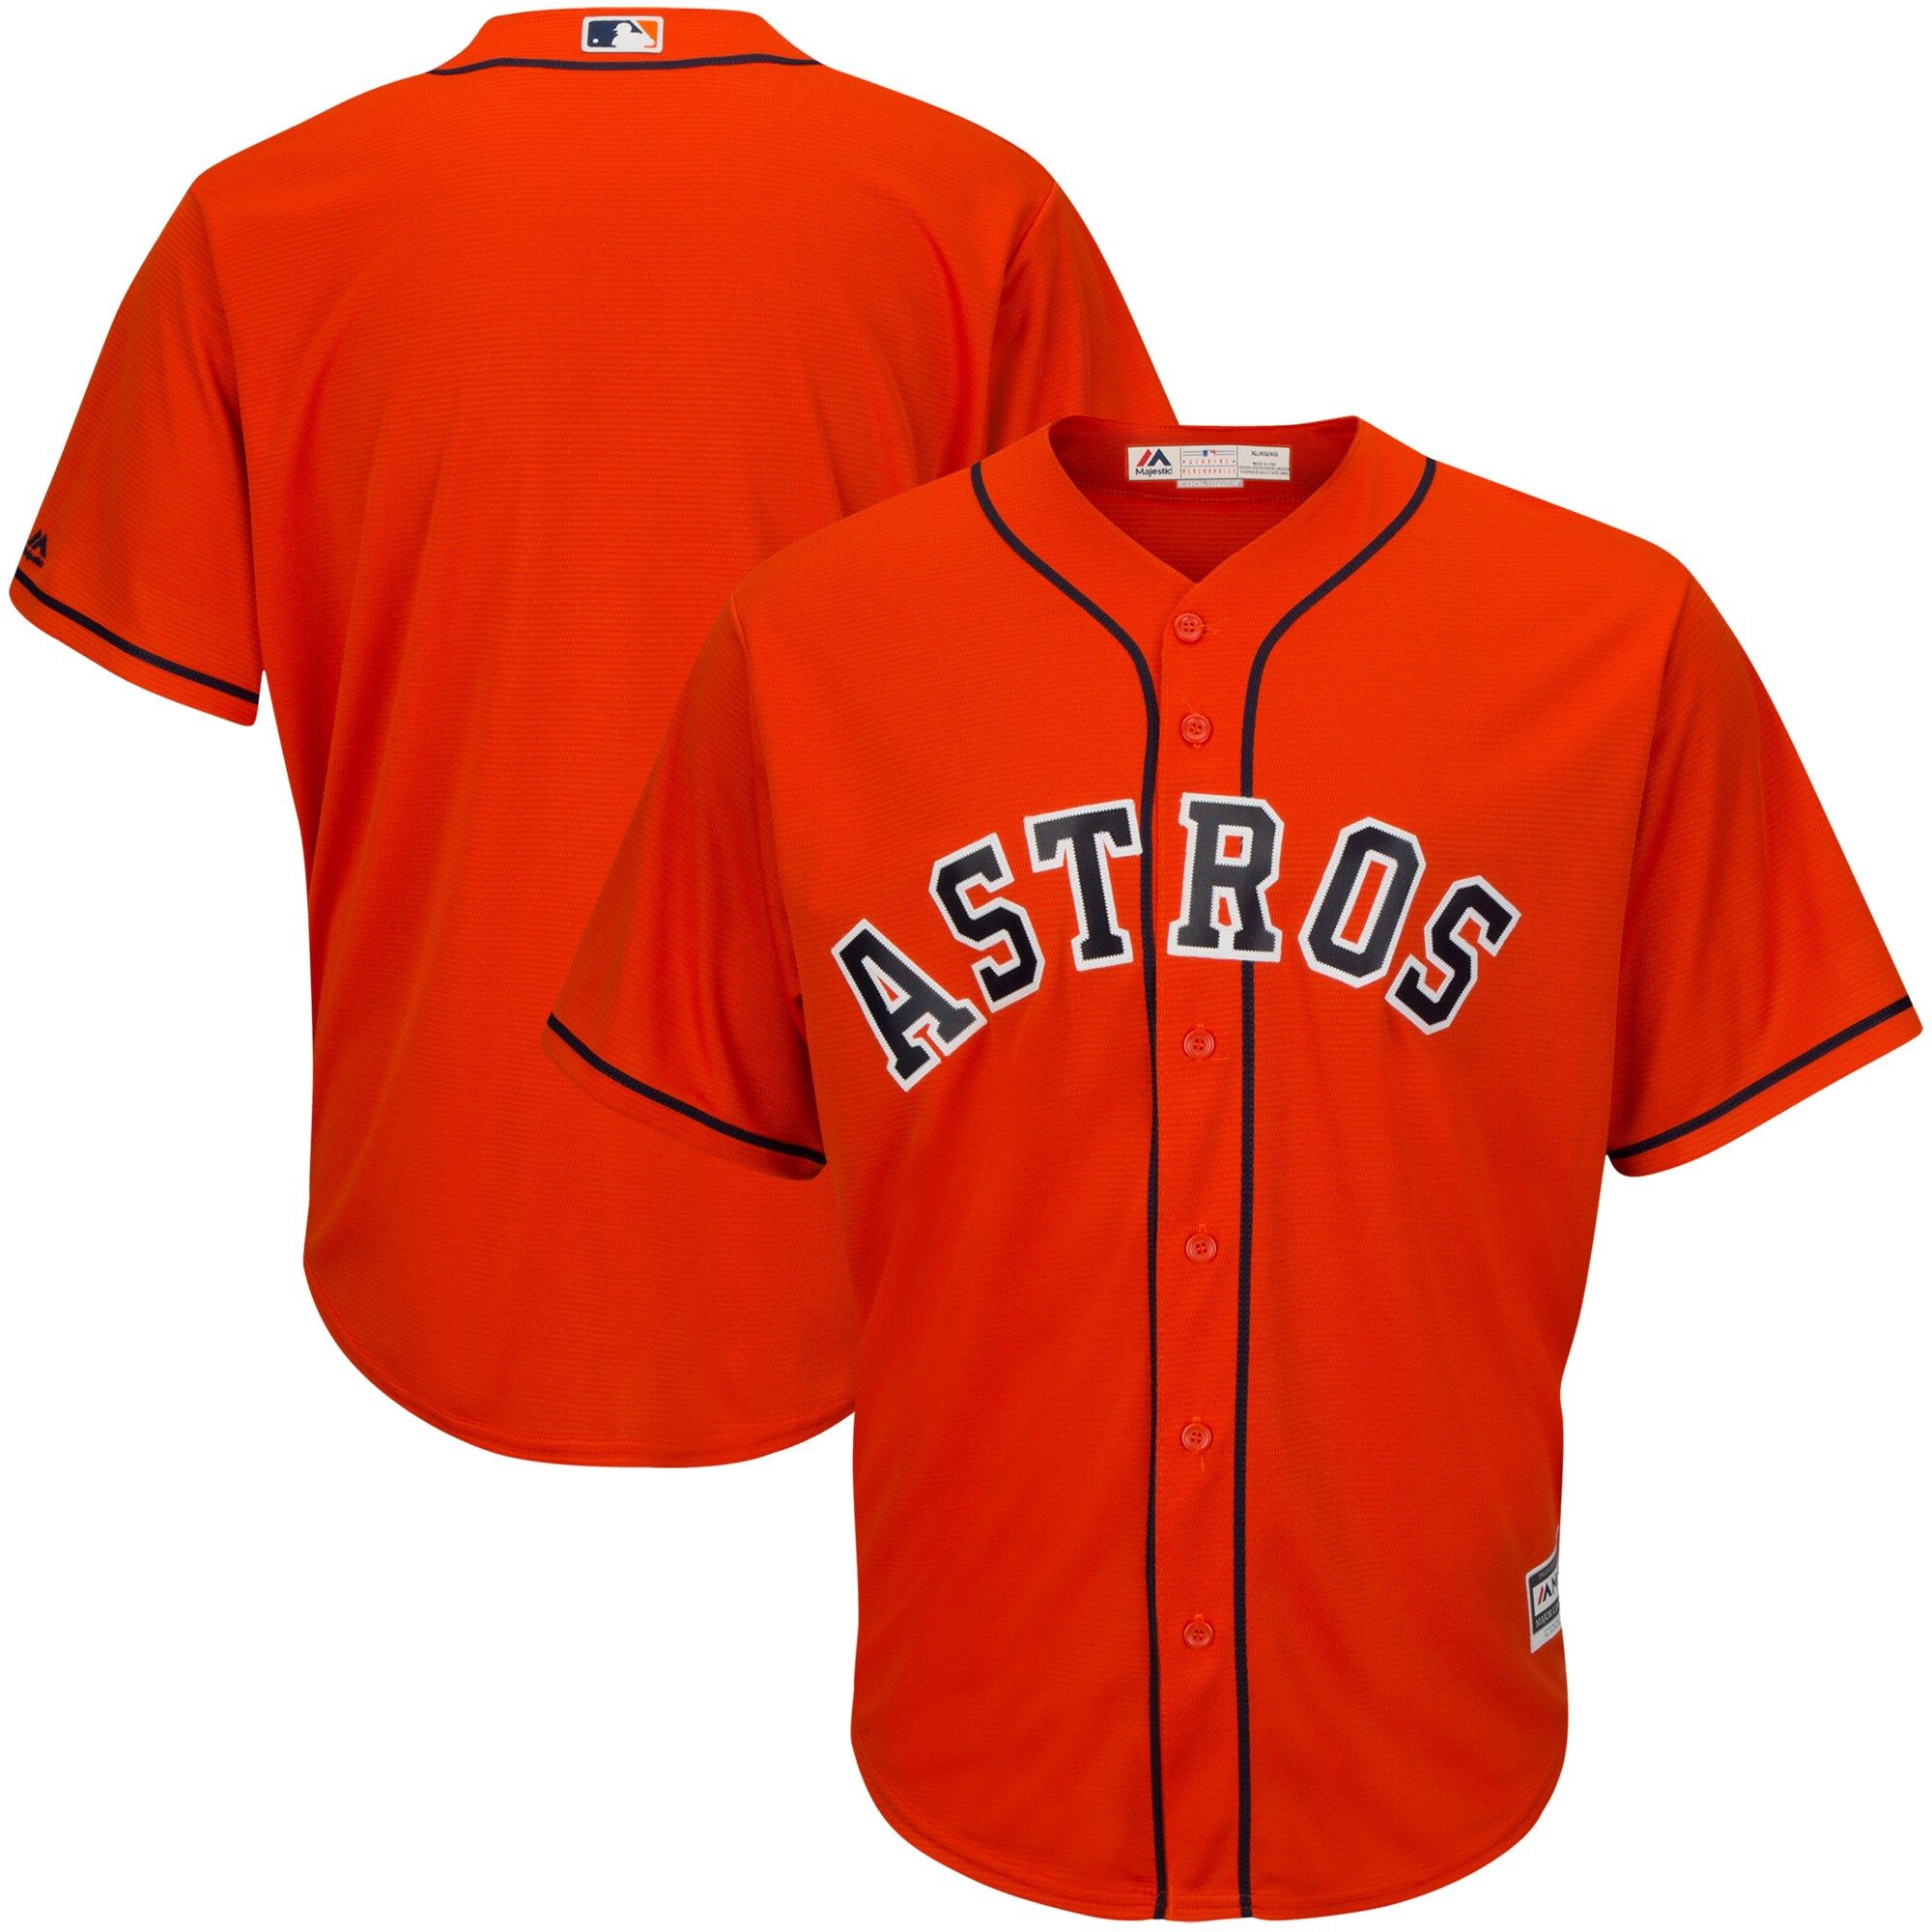 Houston Astros Majestic Big & Tall Cooperstown Cool Base Jersey - Multi